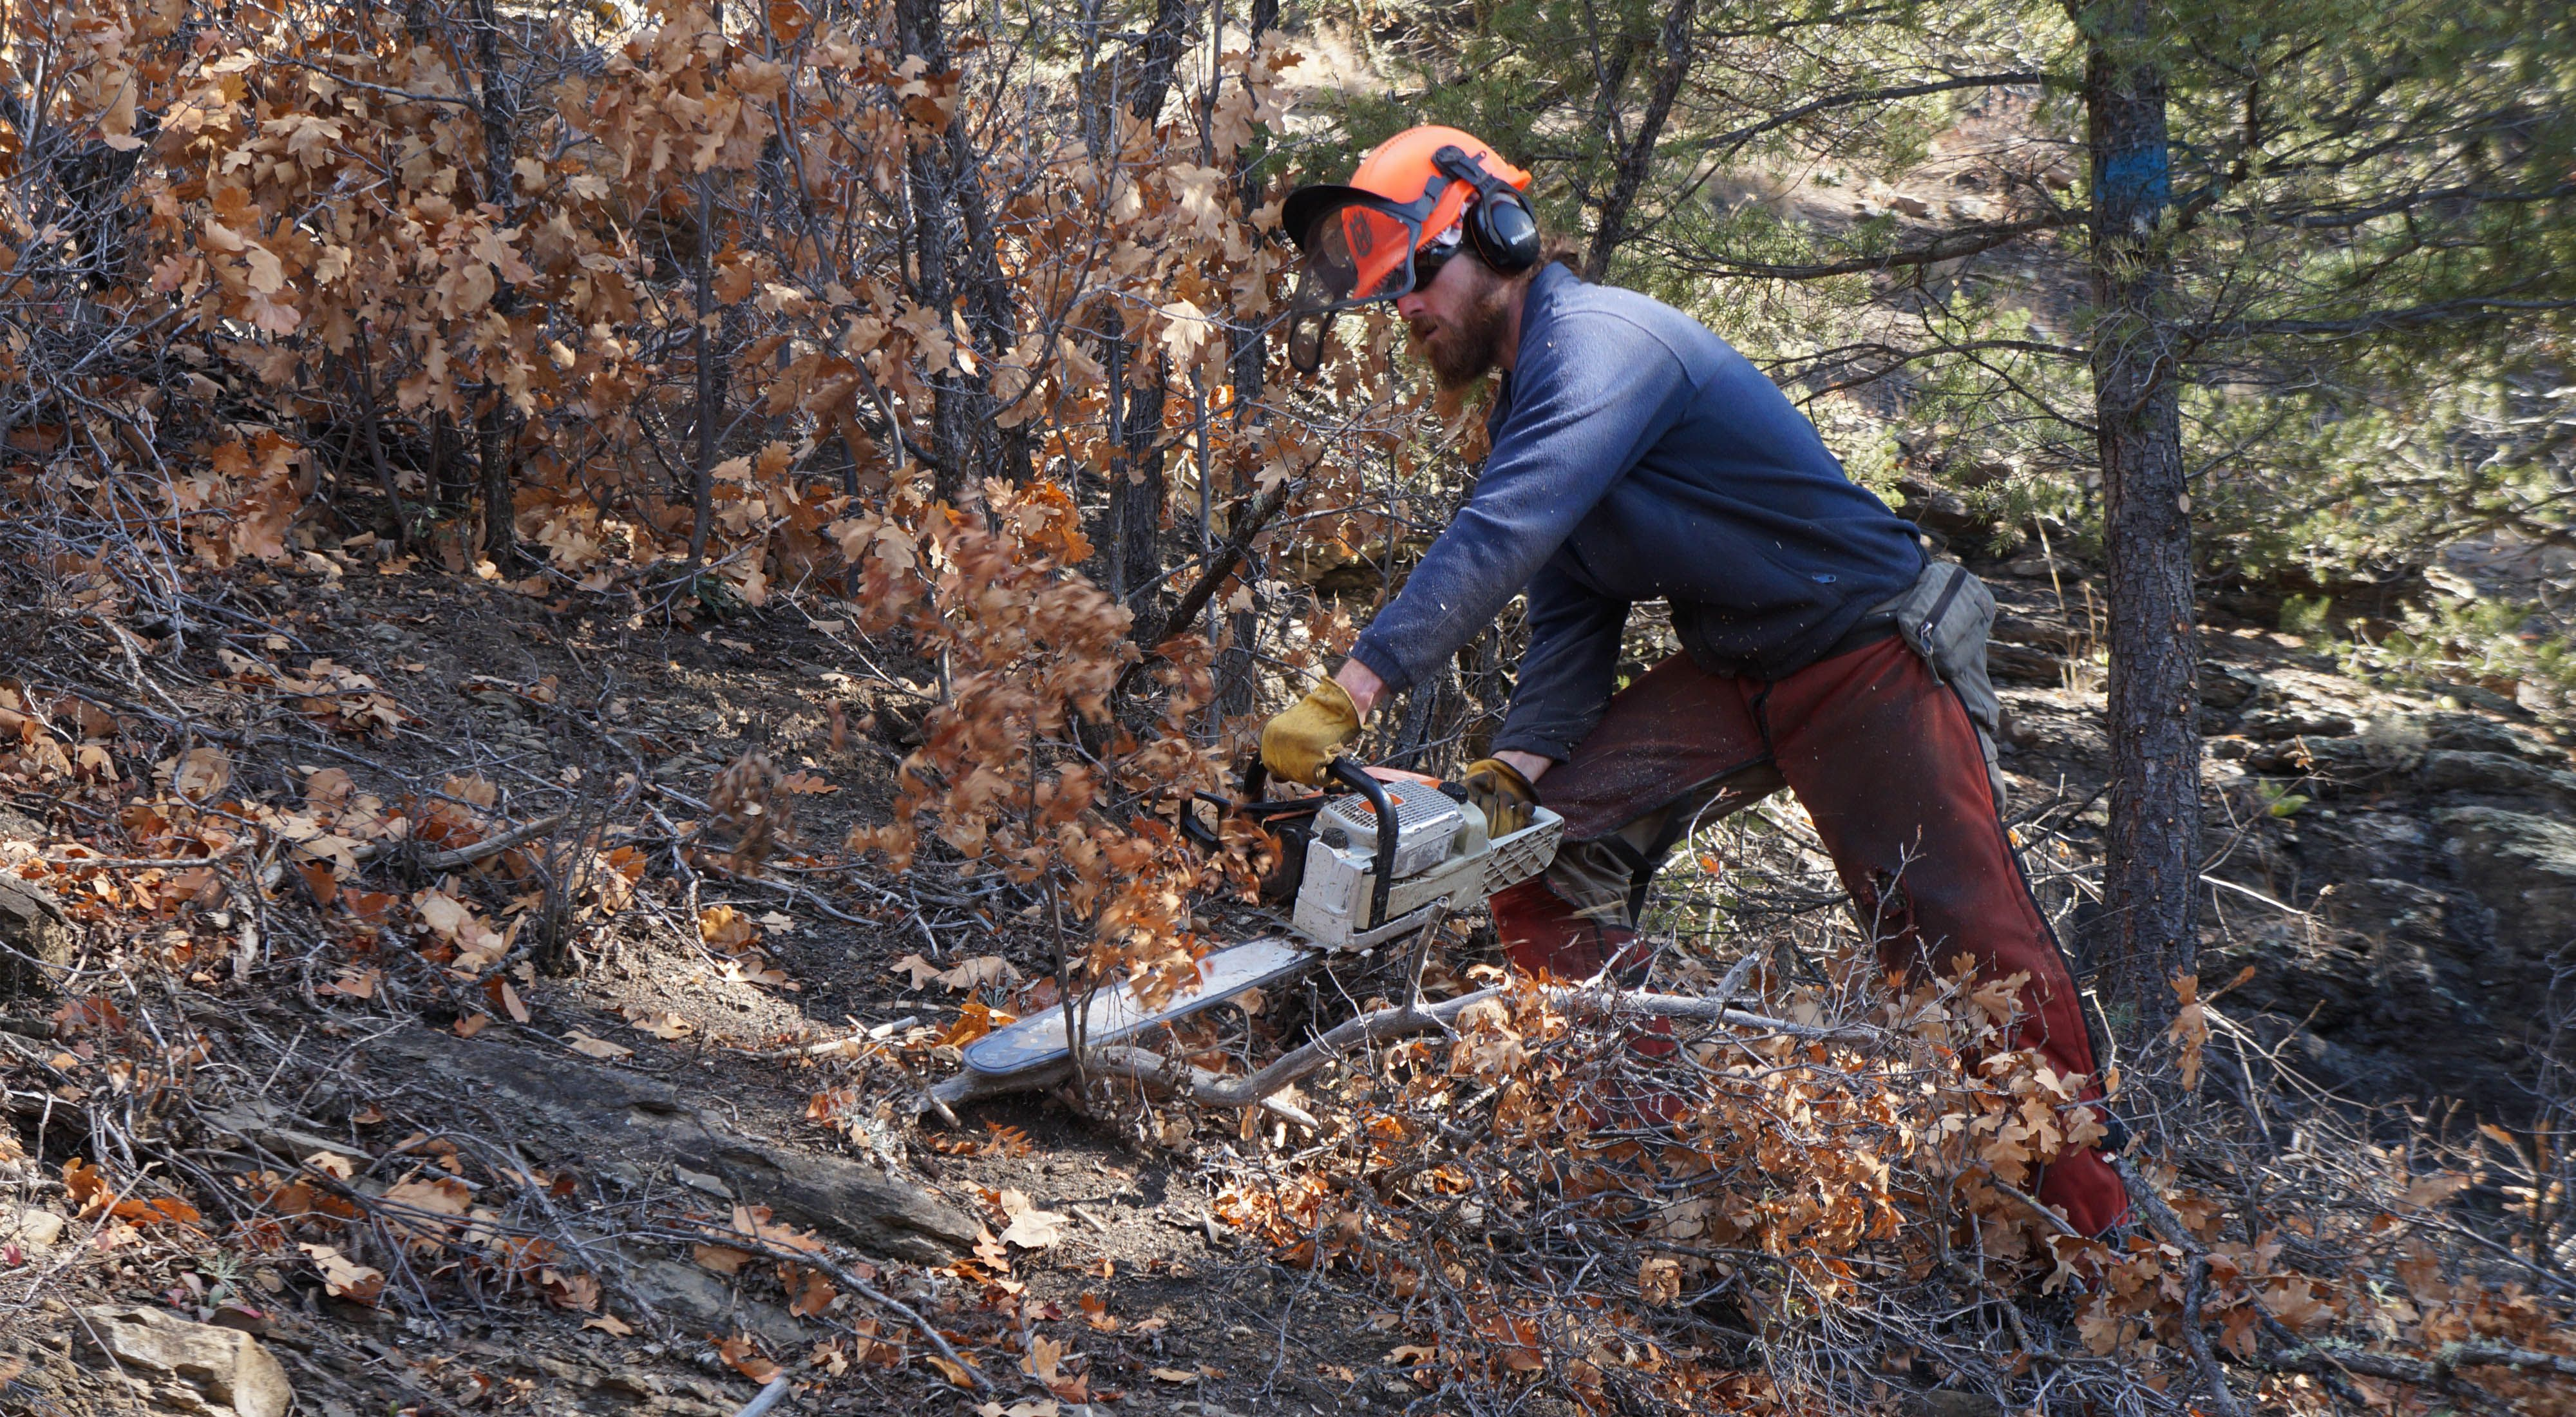 a man cuts limbs off a downed tree with a chainsaw